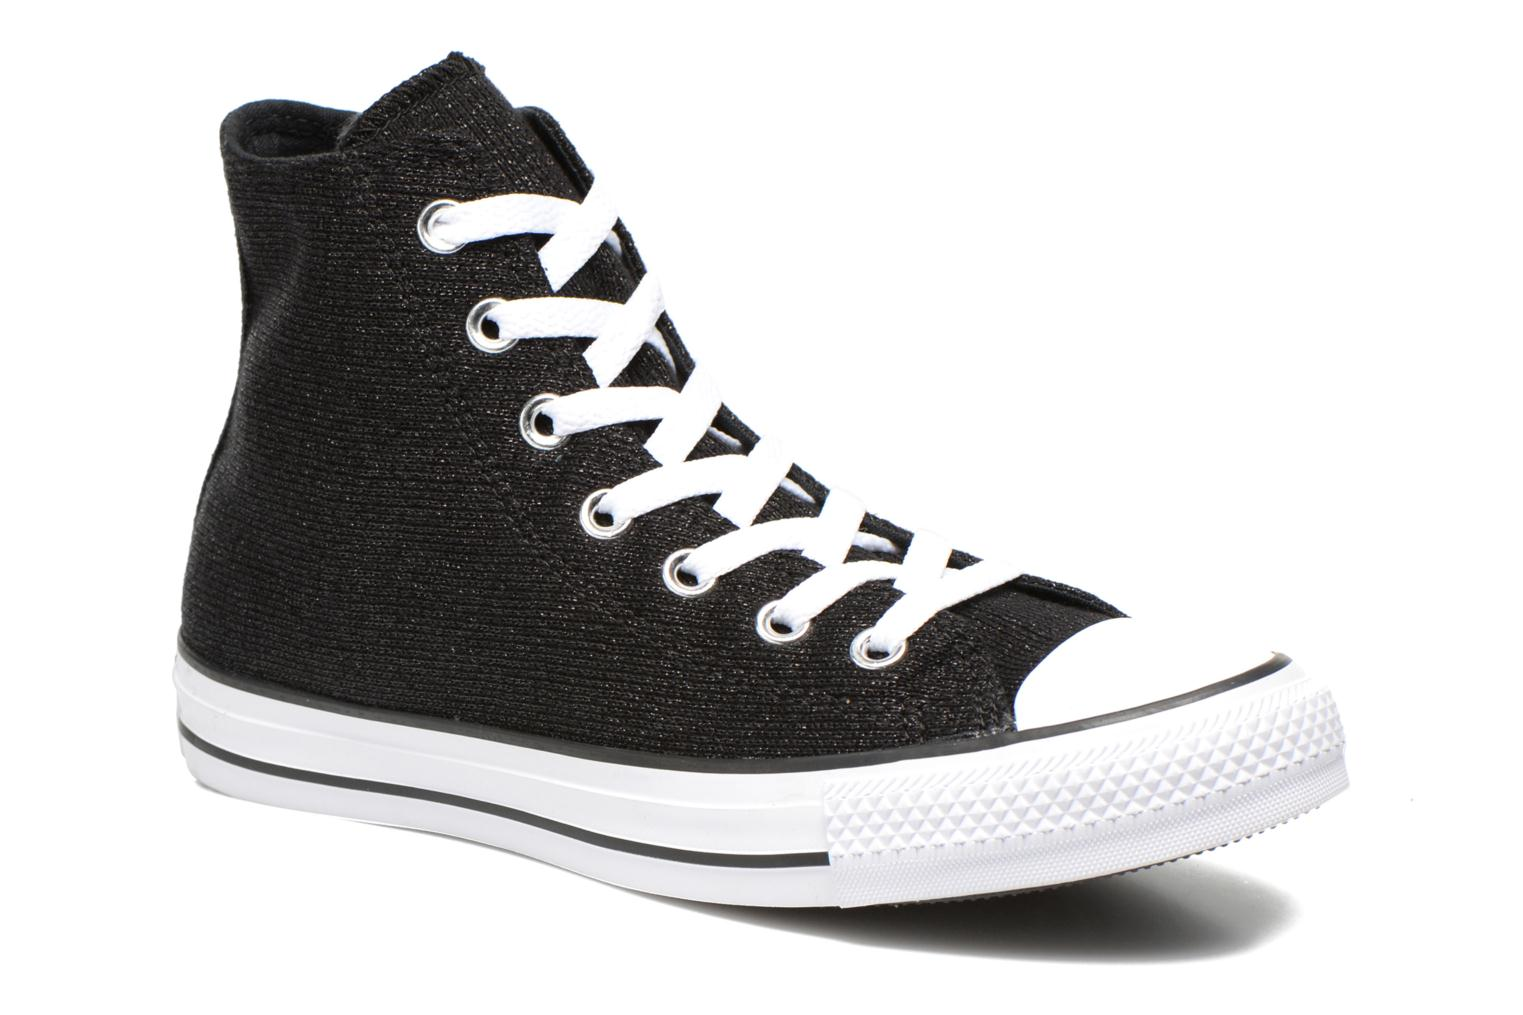 Chuck Taylor All Star Sparkle Knit Hi W by Converse